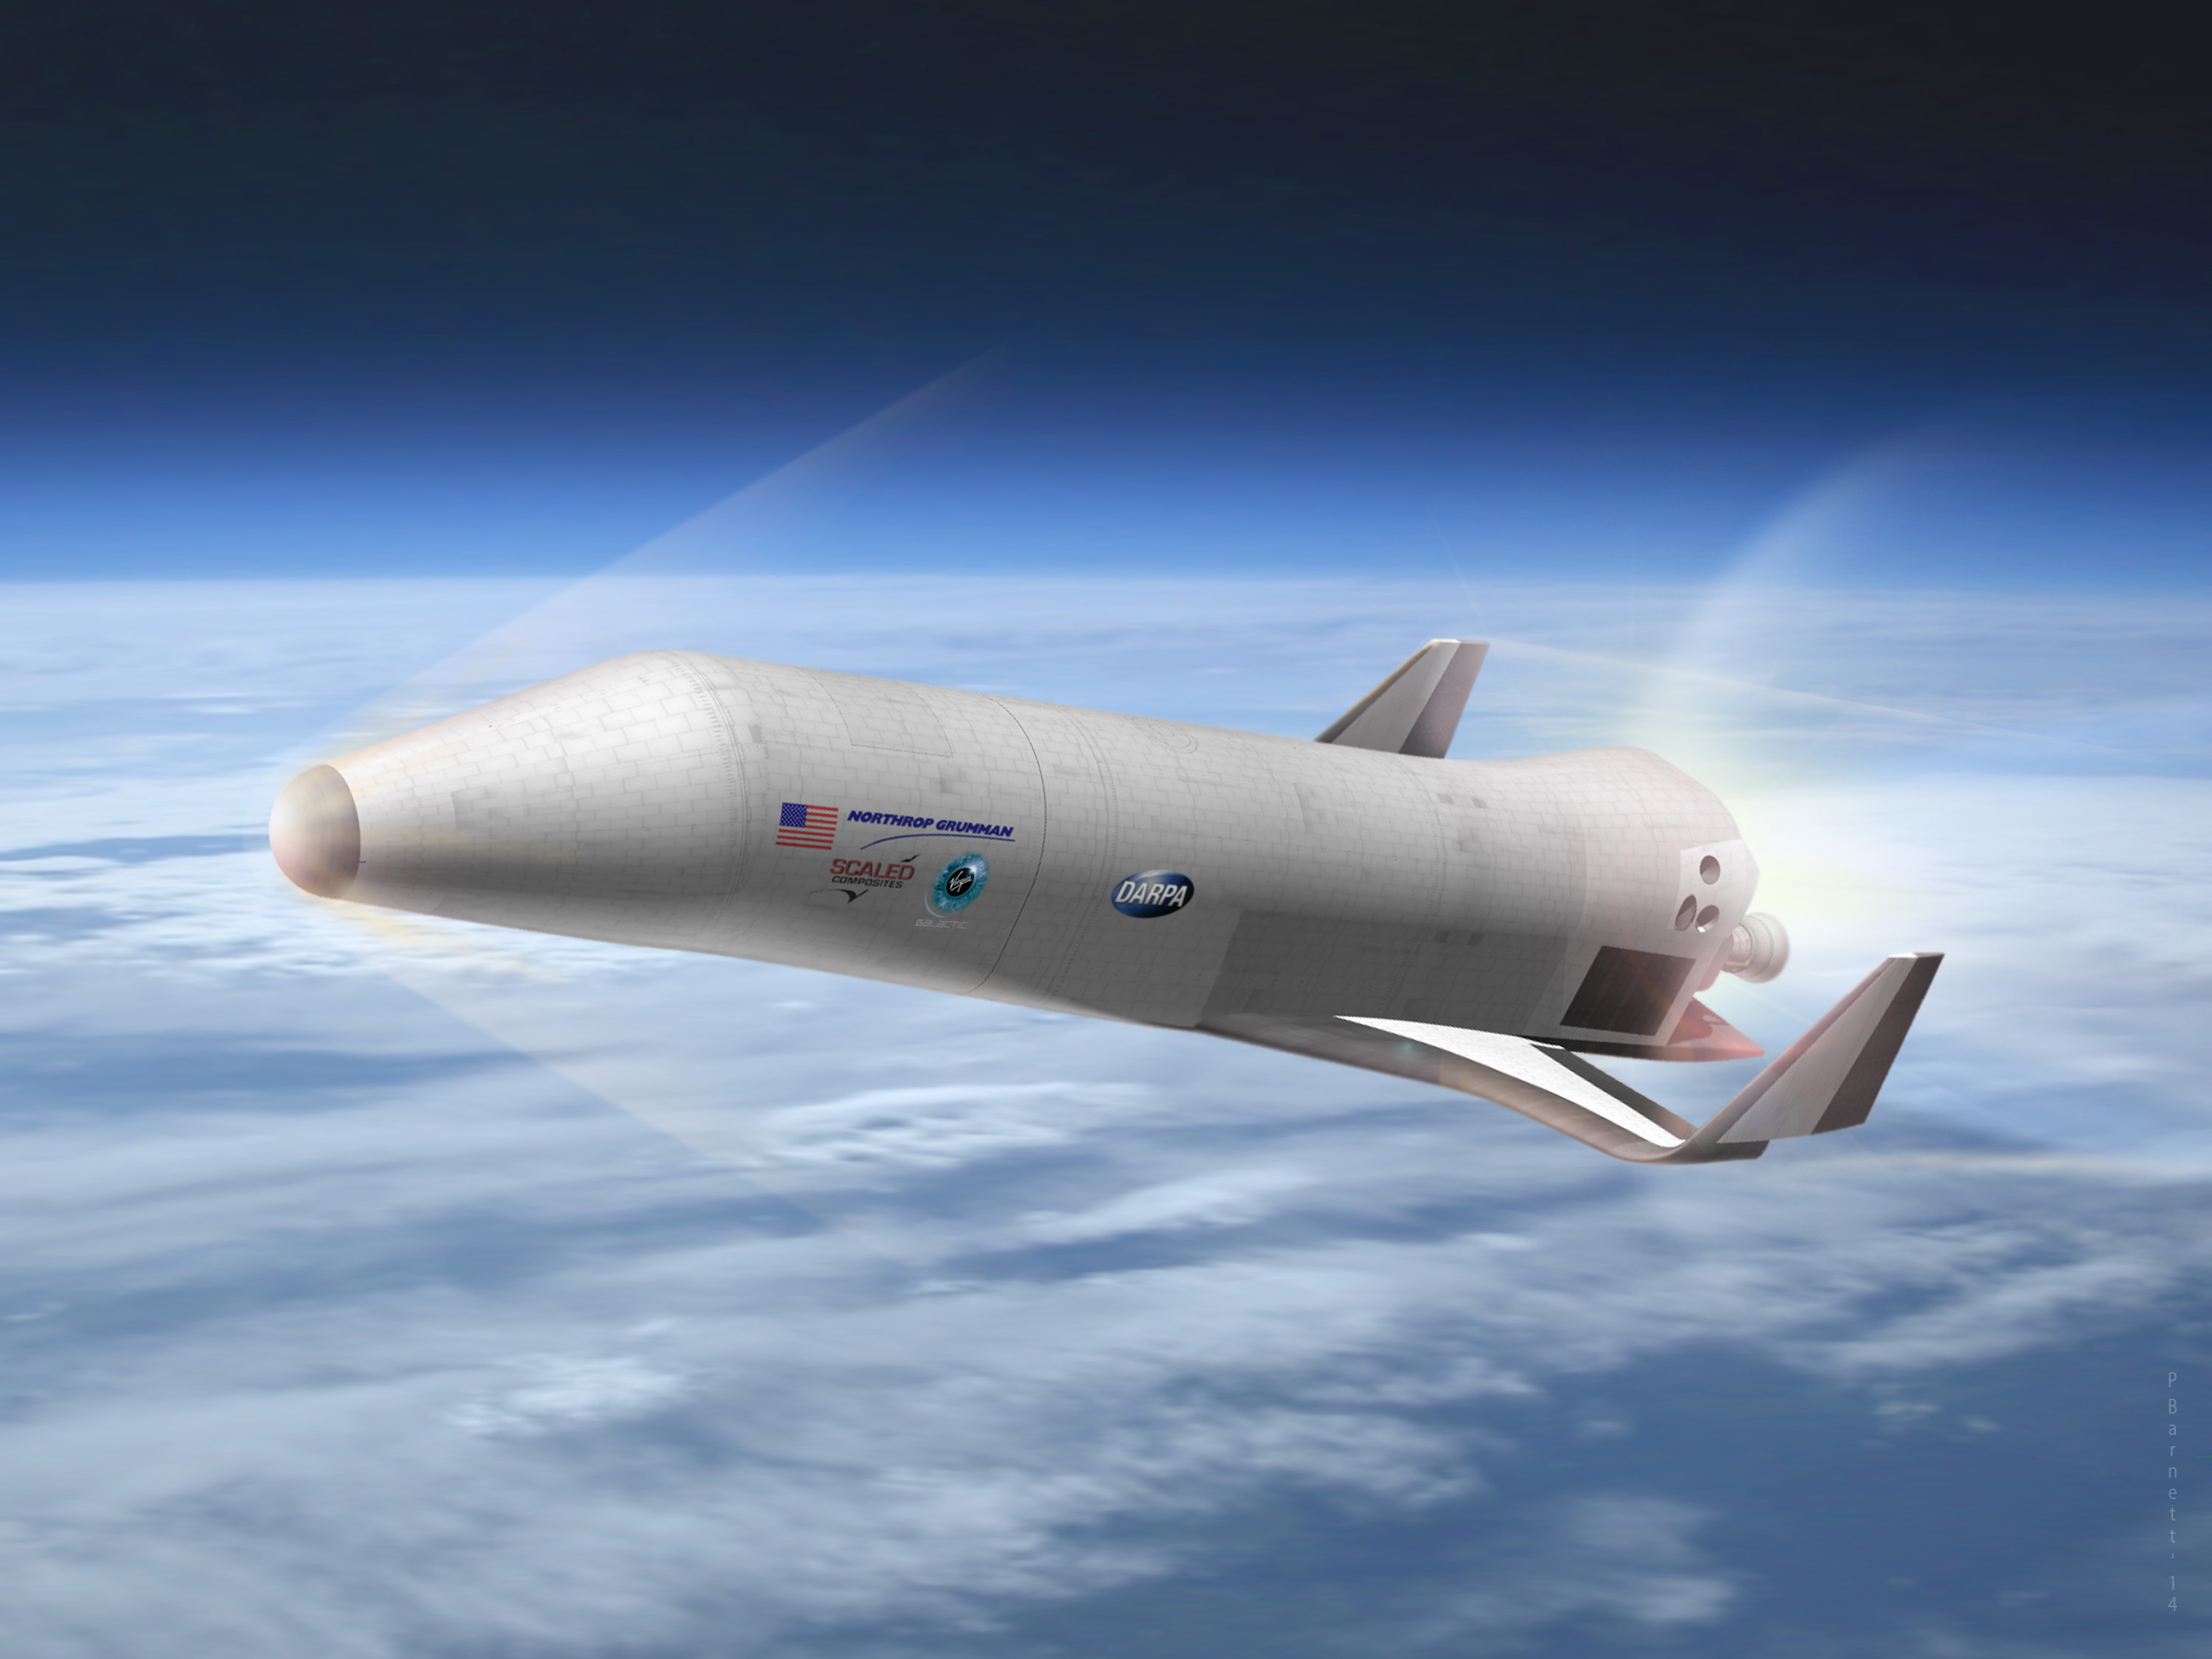 DARPA Experimental Spaceplane XS-1